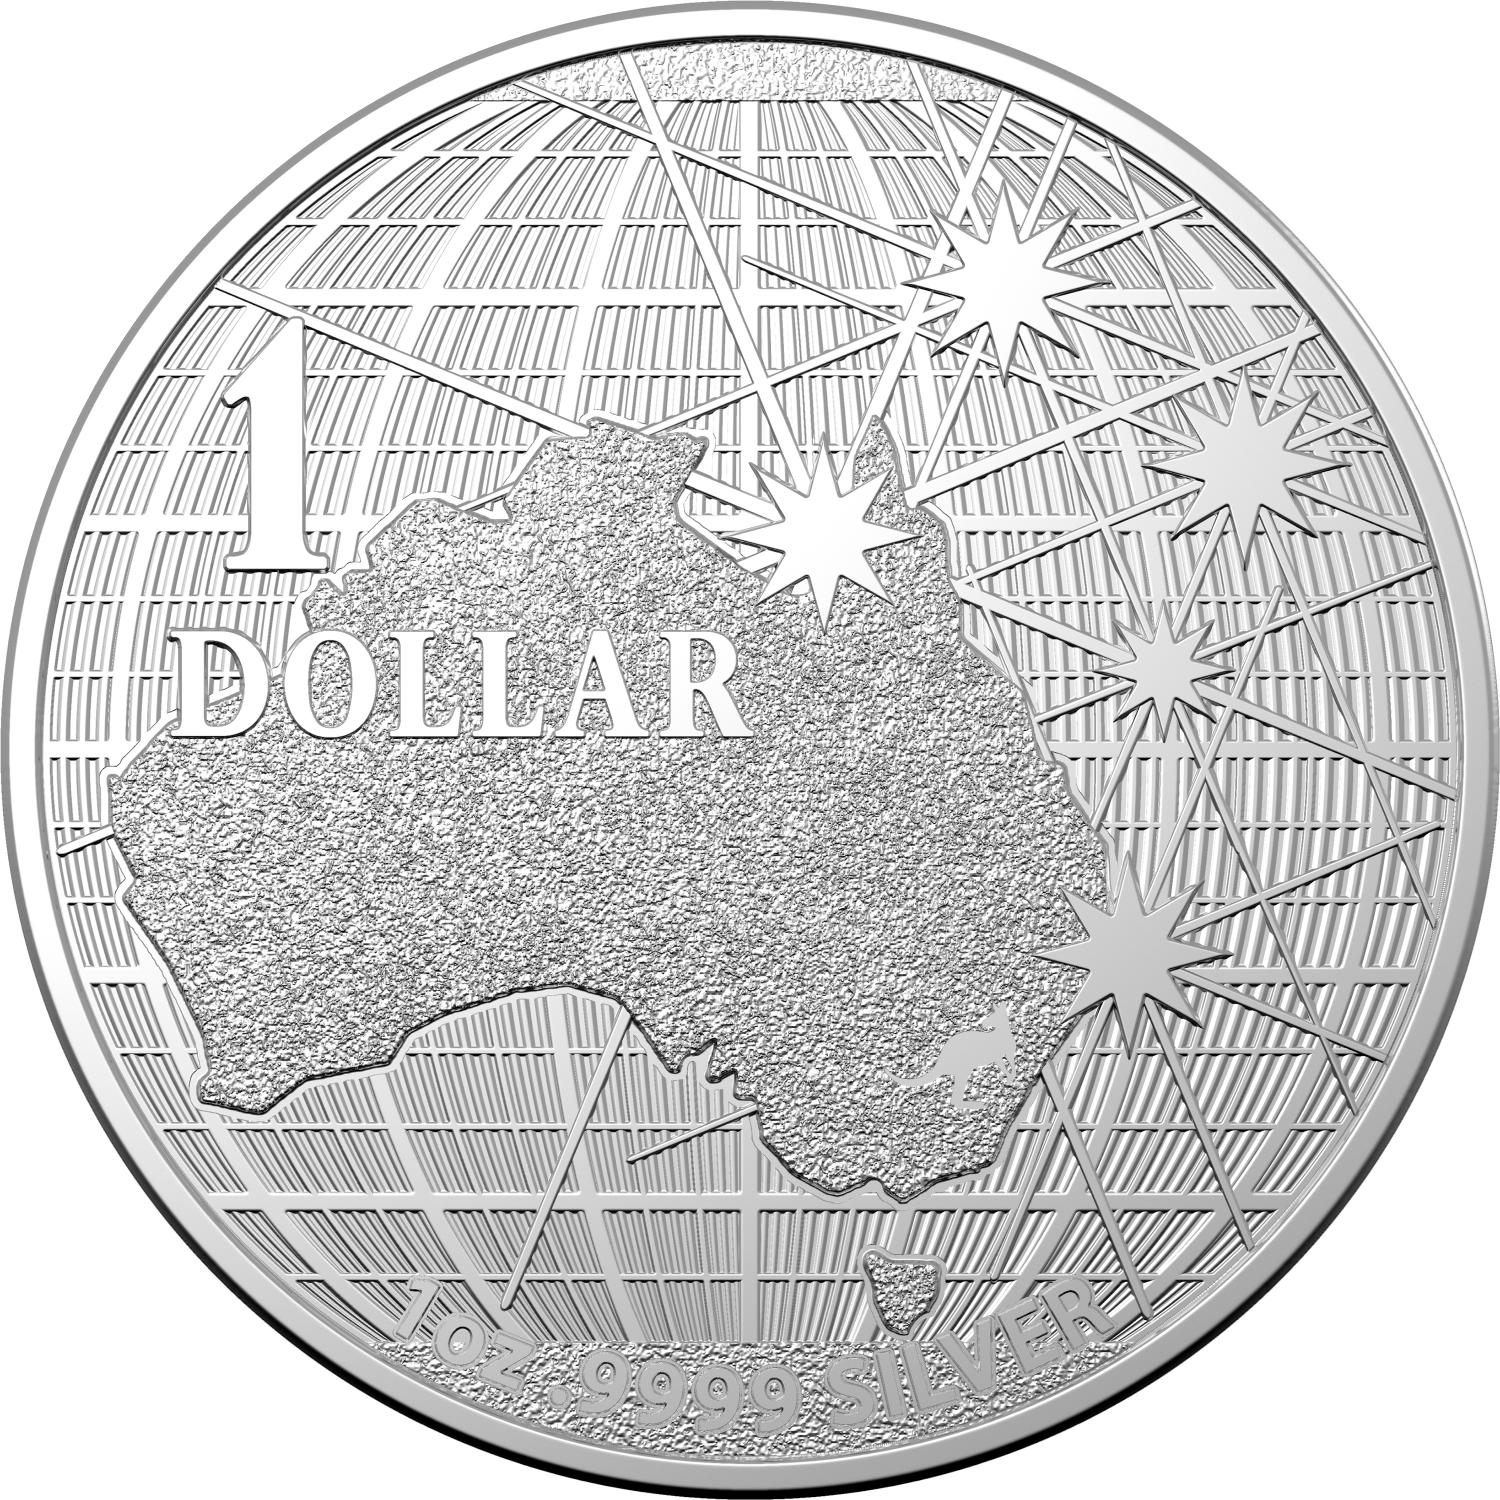 Thumbnail for 2020 $1 Beneath The Southern Skies Silver 99.9%Ag 1oz Brilliant UNC Coin in Capsule - Royal Australian Mint